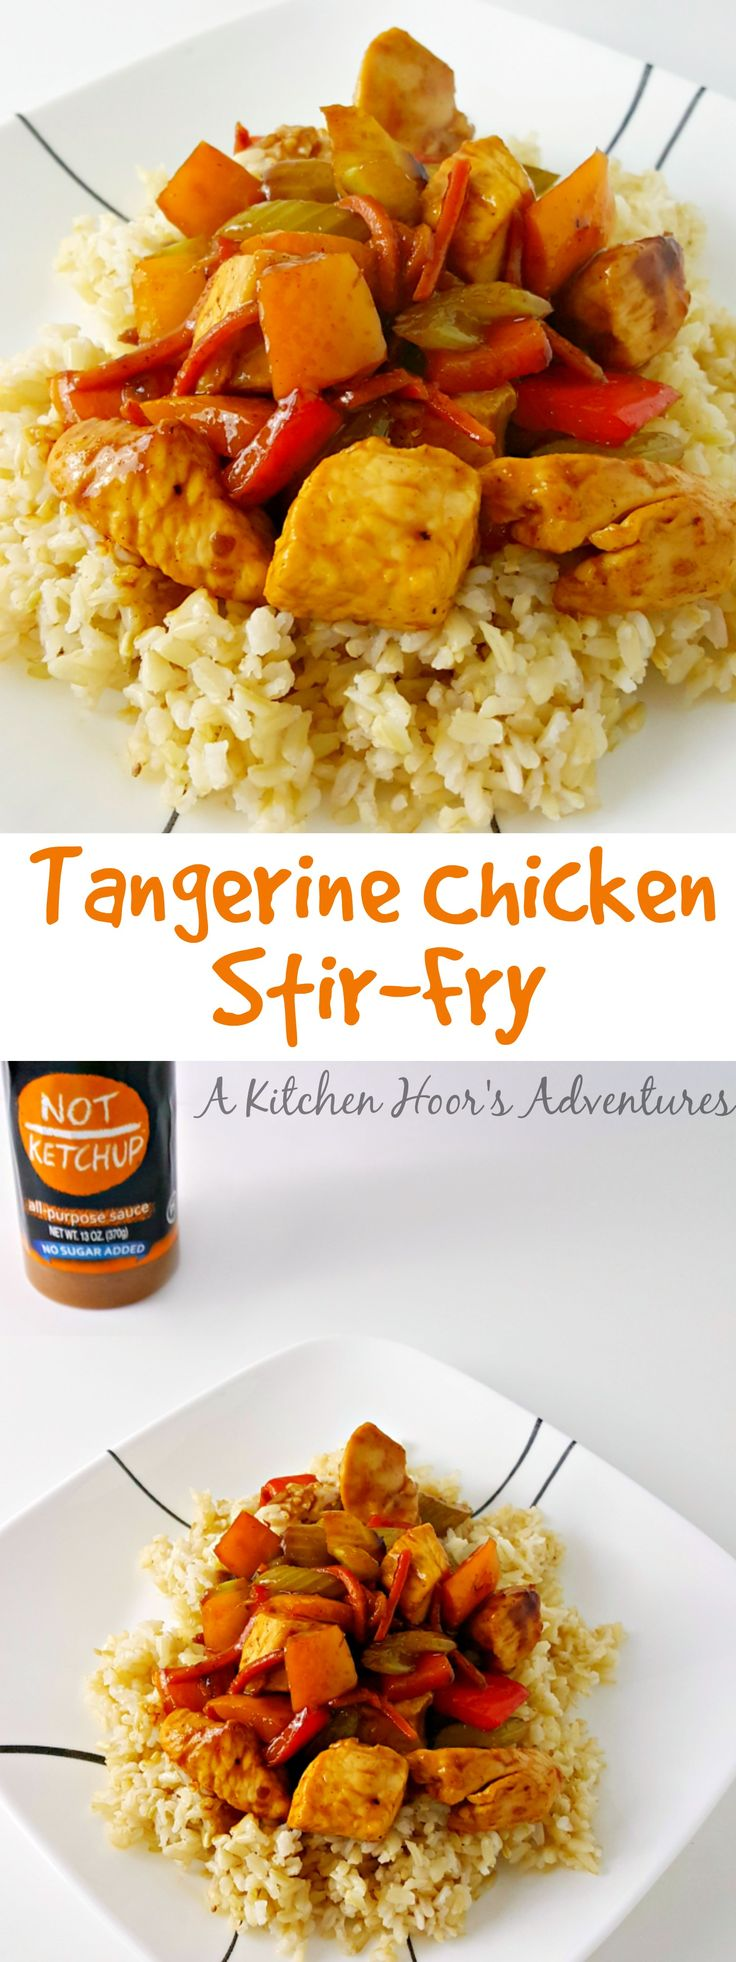 Both sweet and tangy, this #FreshTastyValentines recipe for Tangerine Chicken Stir-Fry is healthy and quick, It uses @NotKetchupSauce Tangerine Hatch Chili sauce, lean chicken breast, and tasty vegetables for this delicious dinner.